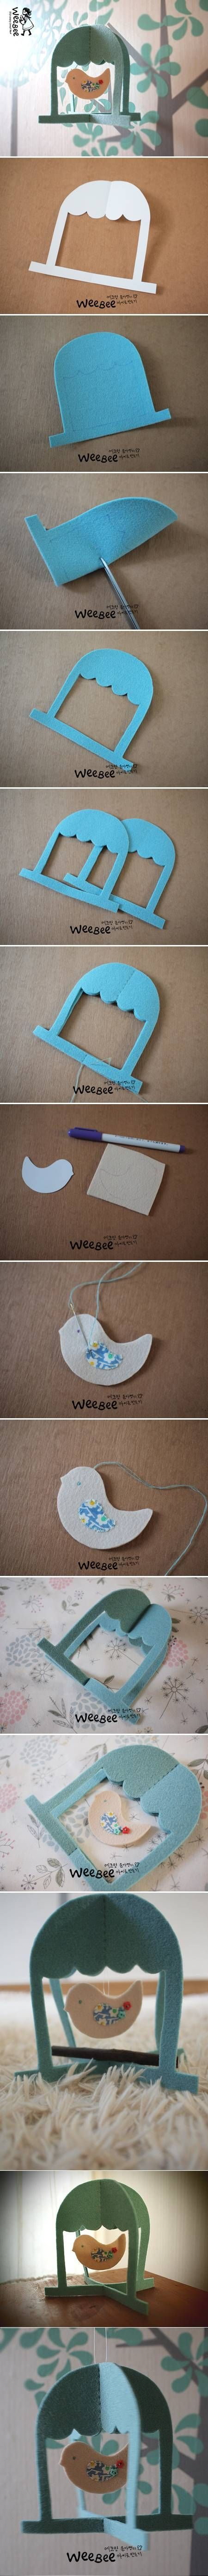 DIY Cute Felt Bird Mobile DIY Cute Felt Bird Mobile by diyforever